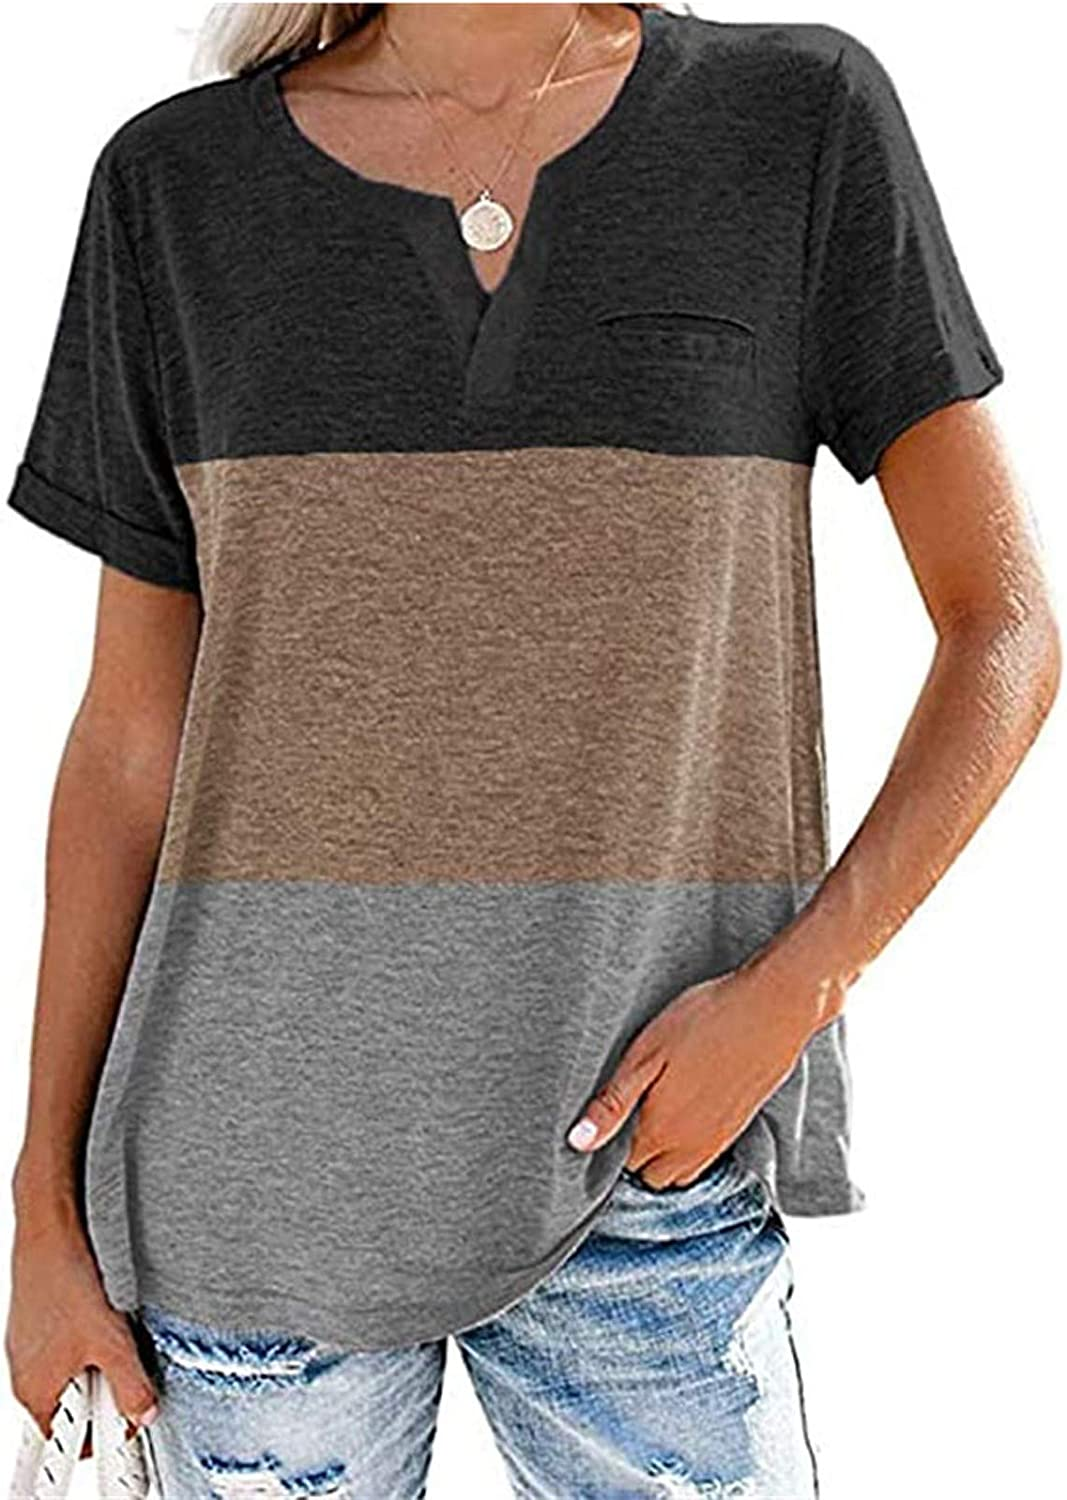 Women's Summer Casual Short Sleeve for V-Neck Shirts Cute Color Block Tunic Tees Tops Basic Blouses